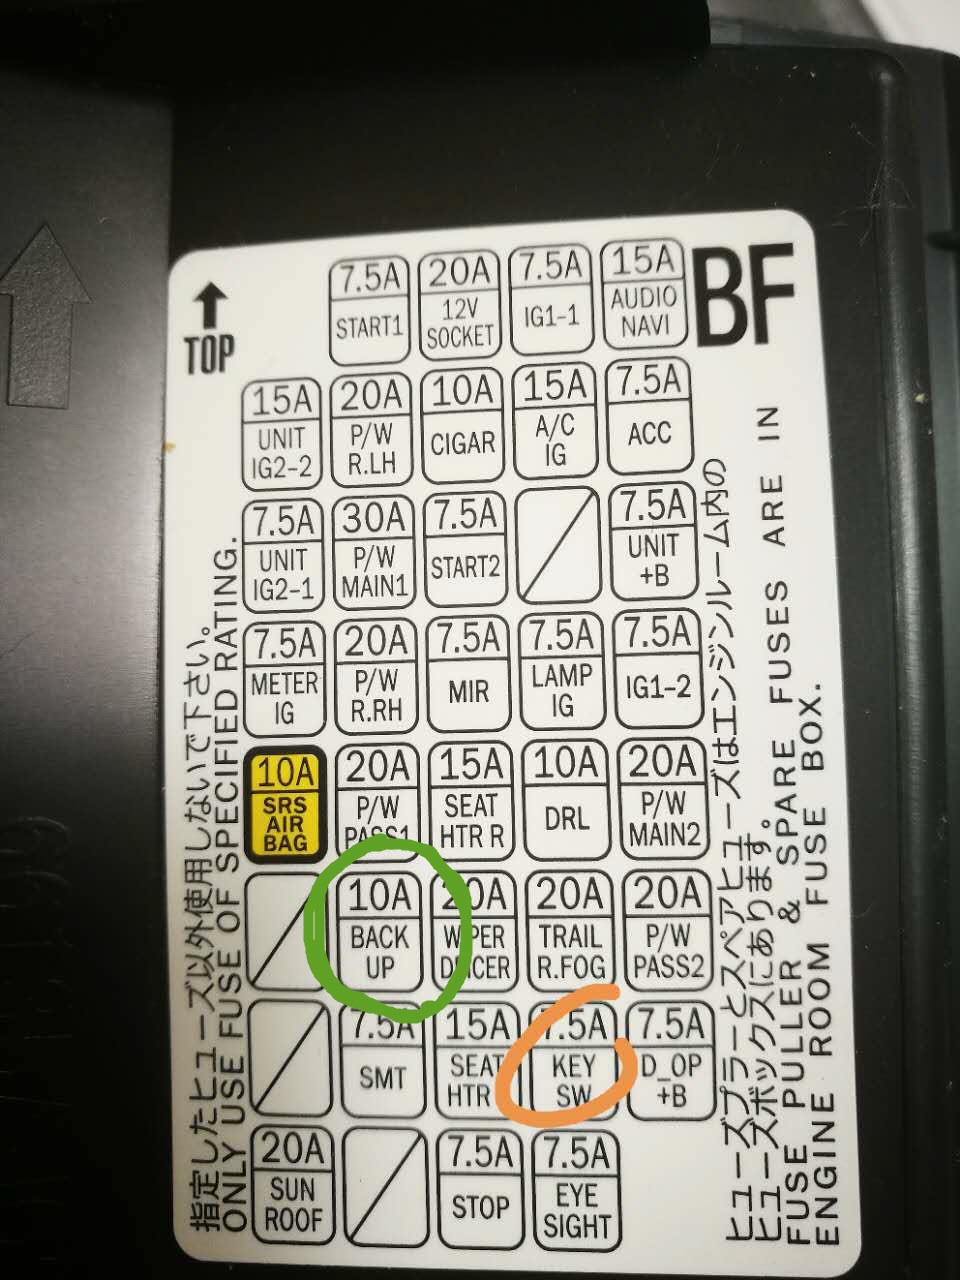 [DIAGRAM_38ZD]  2015 subaru outback fuse box diagram | Subaru Outback Forums | 2015 Subaru Sti Fuse Diagram |  | Subaru Outback.org